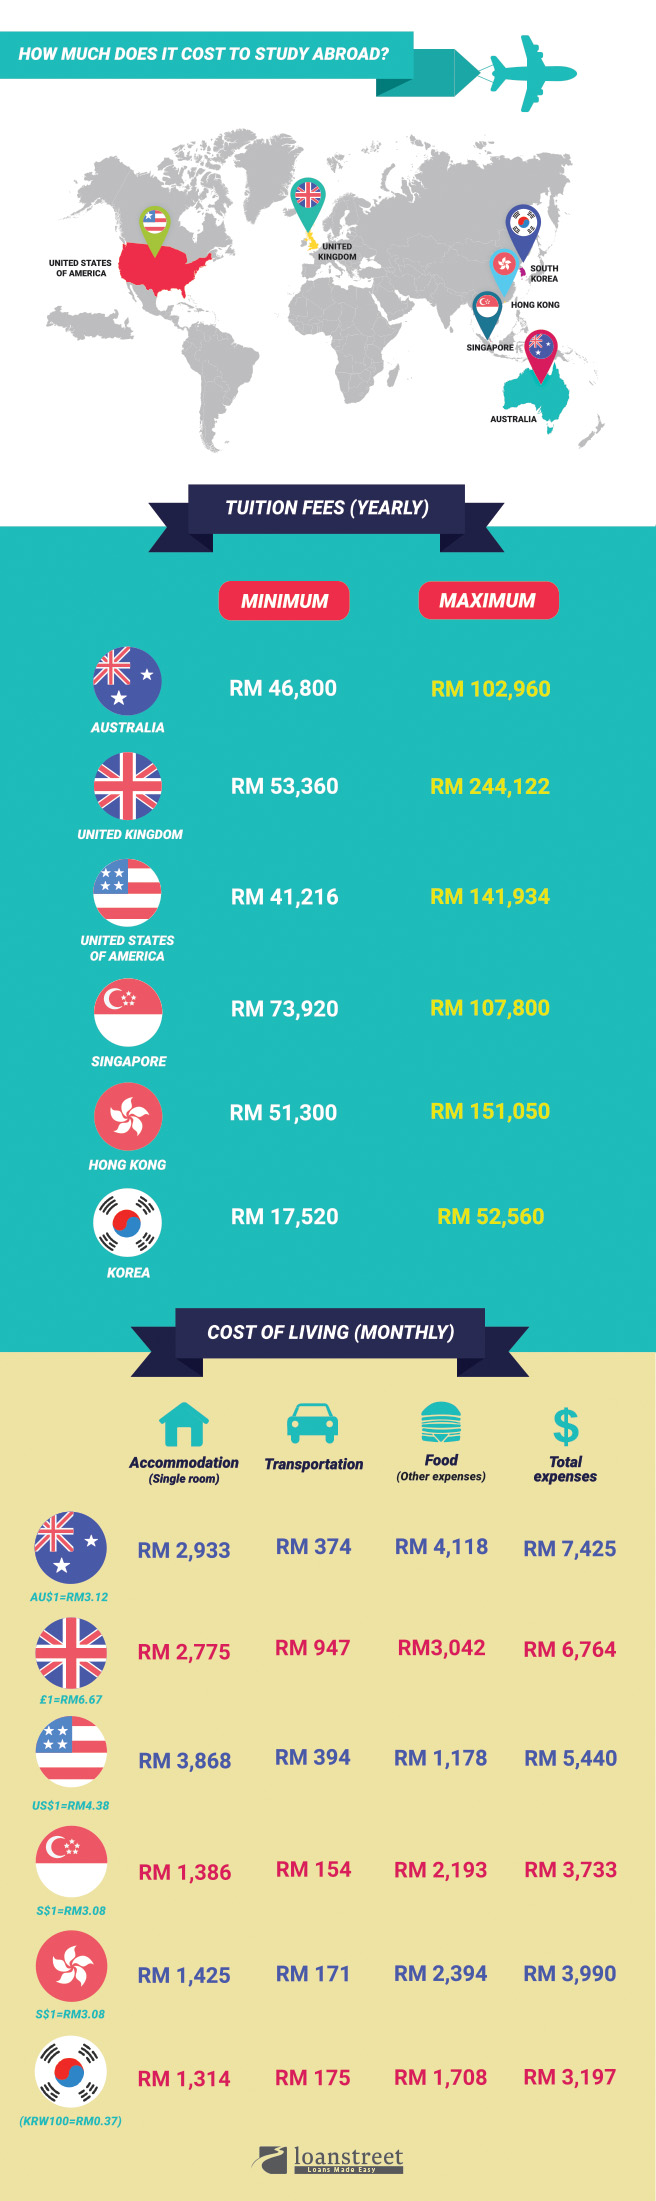 How Much Does It Cost To Study Abroad?